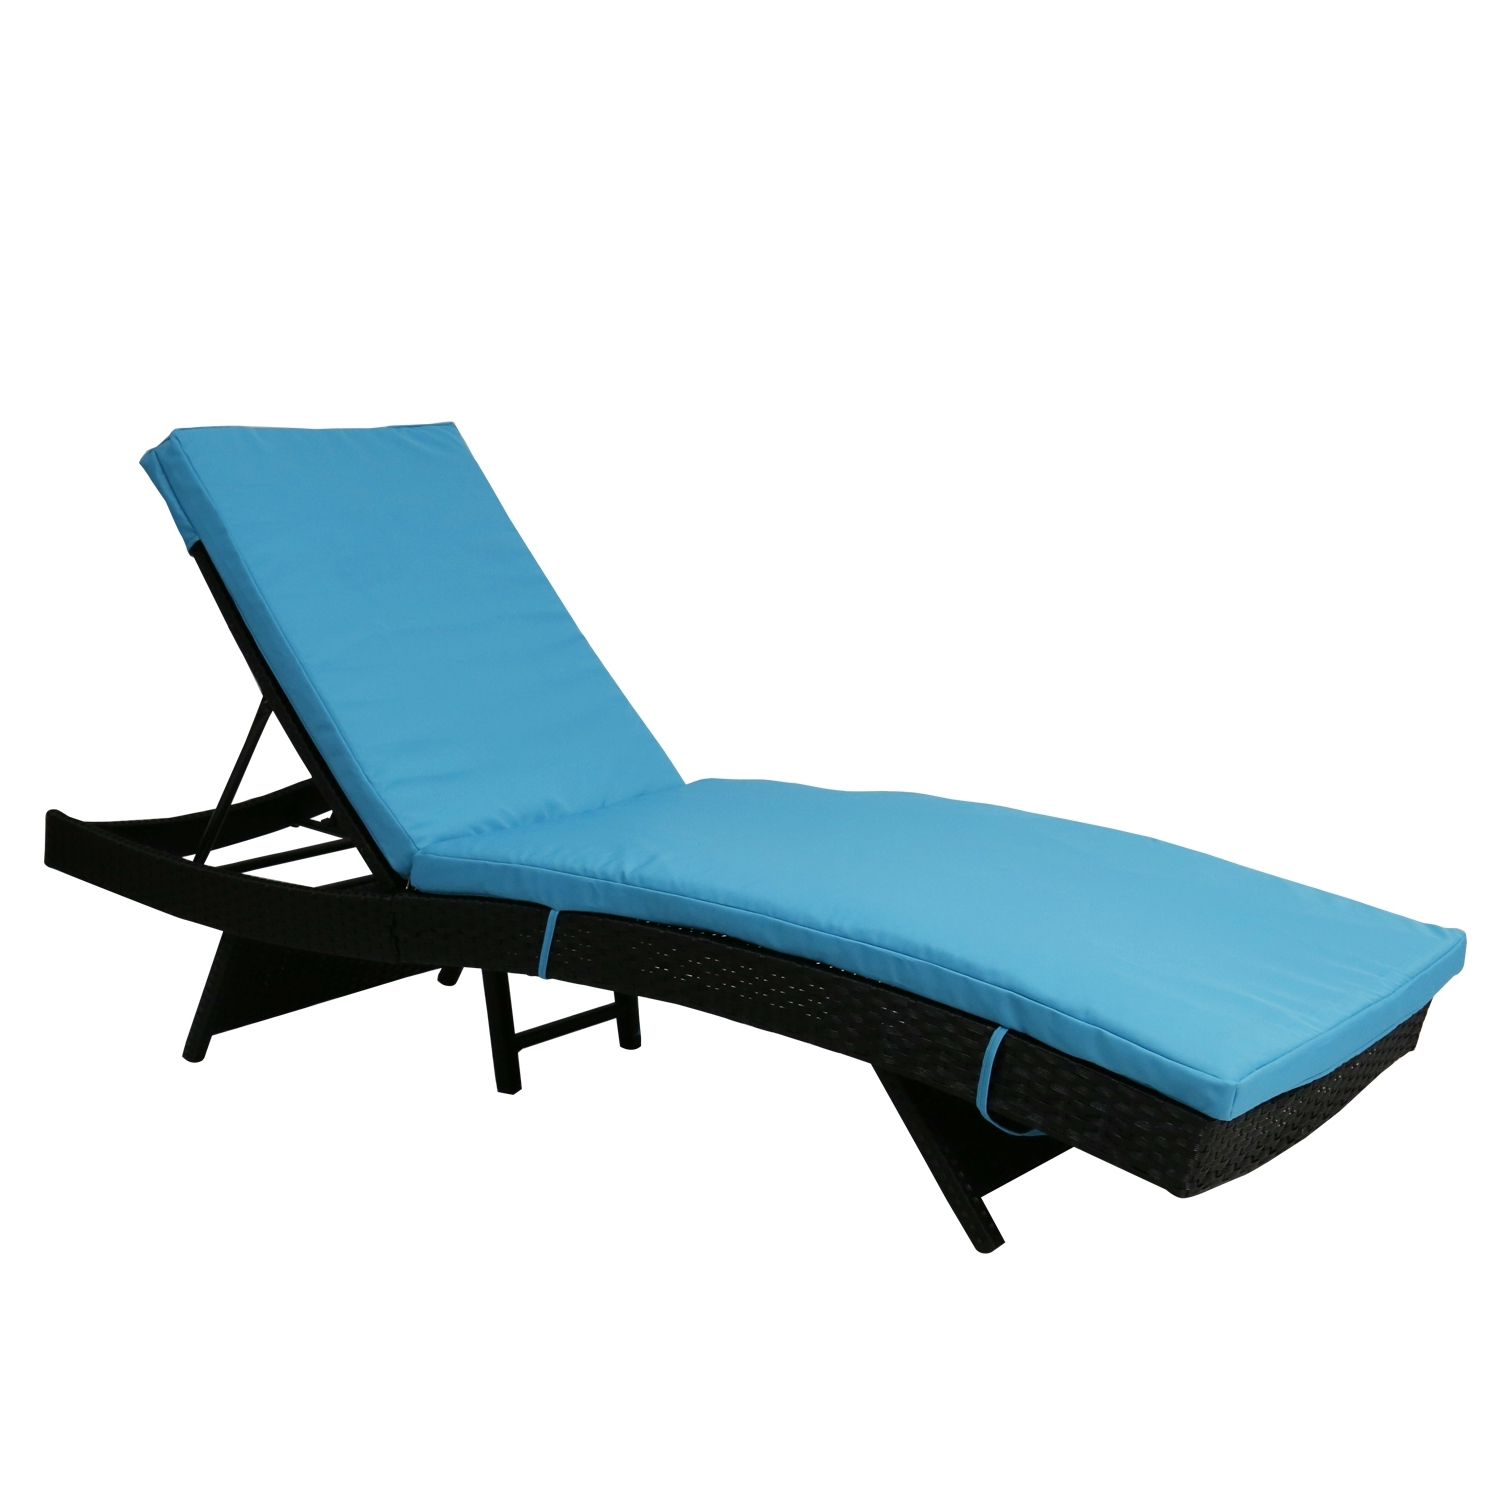 summer chaise lounge chairs spandex chair covers for sale kinbor outdoor patio adjustable black pe wicker pool furniture w blue cushion